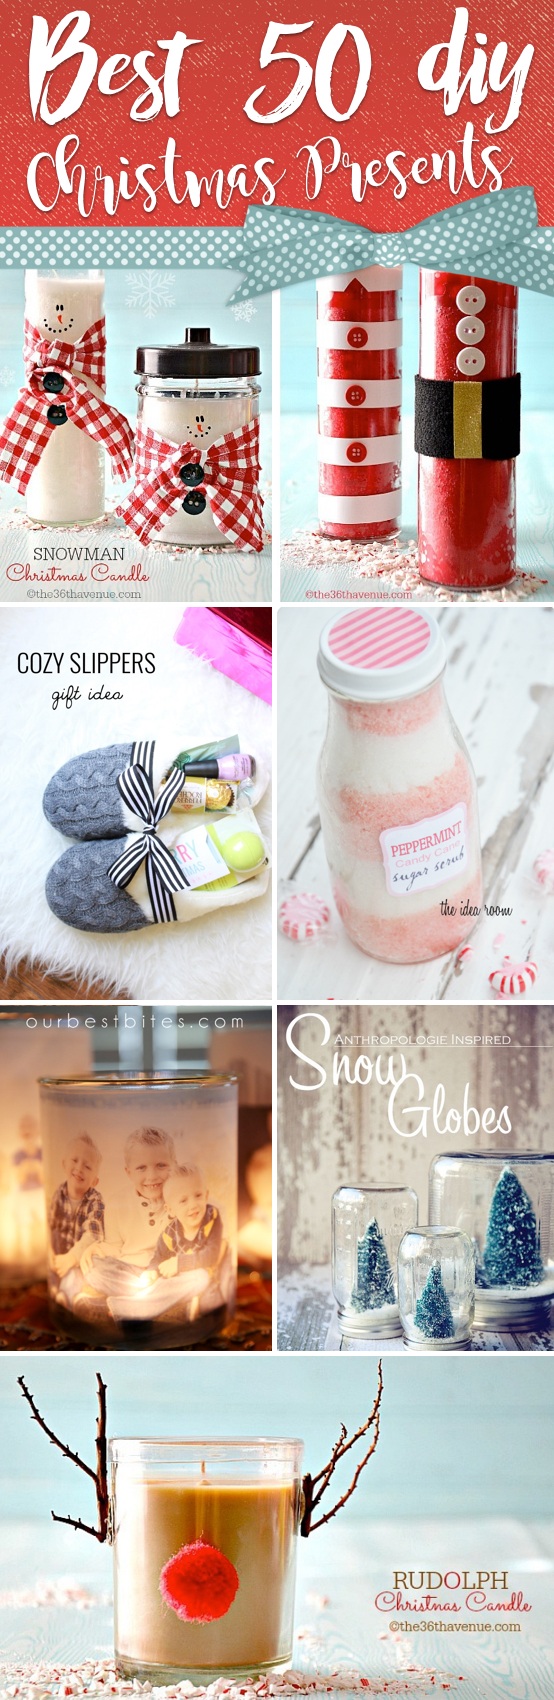 50 diy christmas presents reminding your loved ones of you for years - Homemade Christmas Gifts For Friends